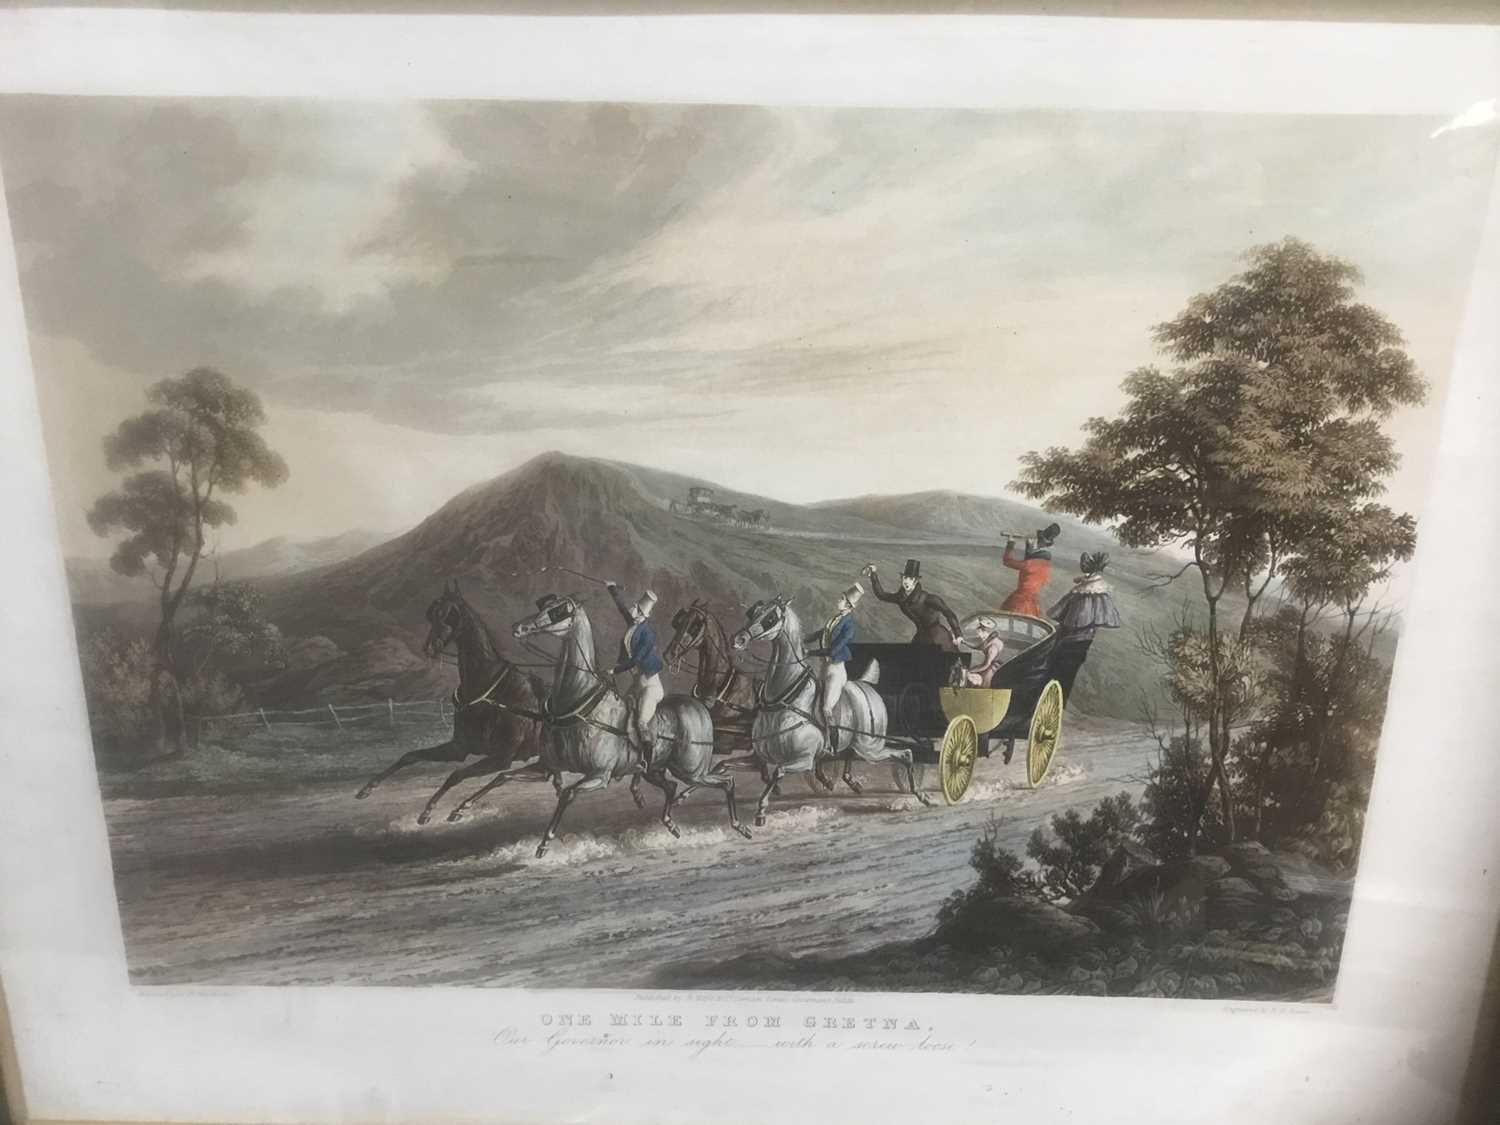 Pair of 19th century hand coloured aquatints by R. Reeves after C. Newhouse, coaching scenes entitle - Image 8 of 11